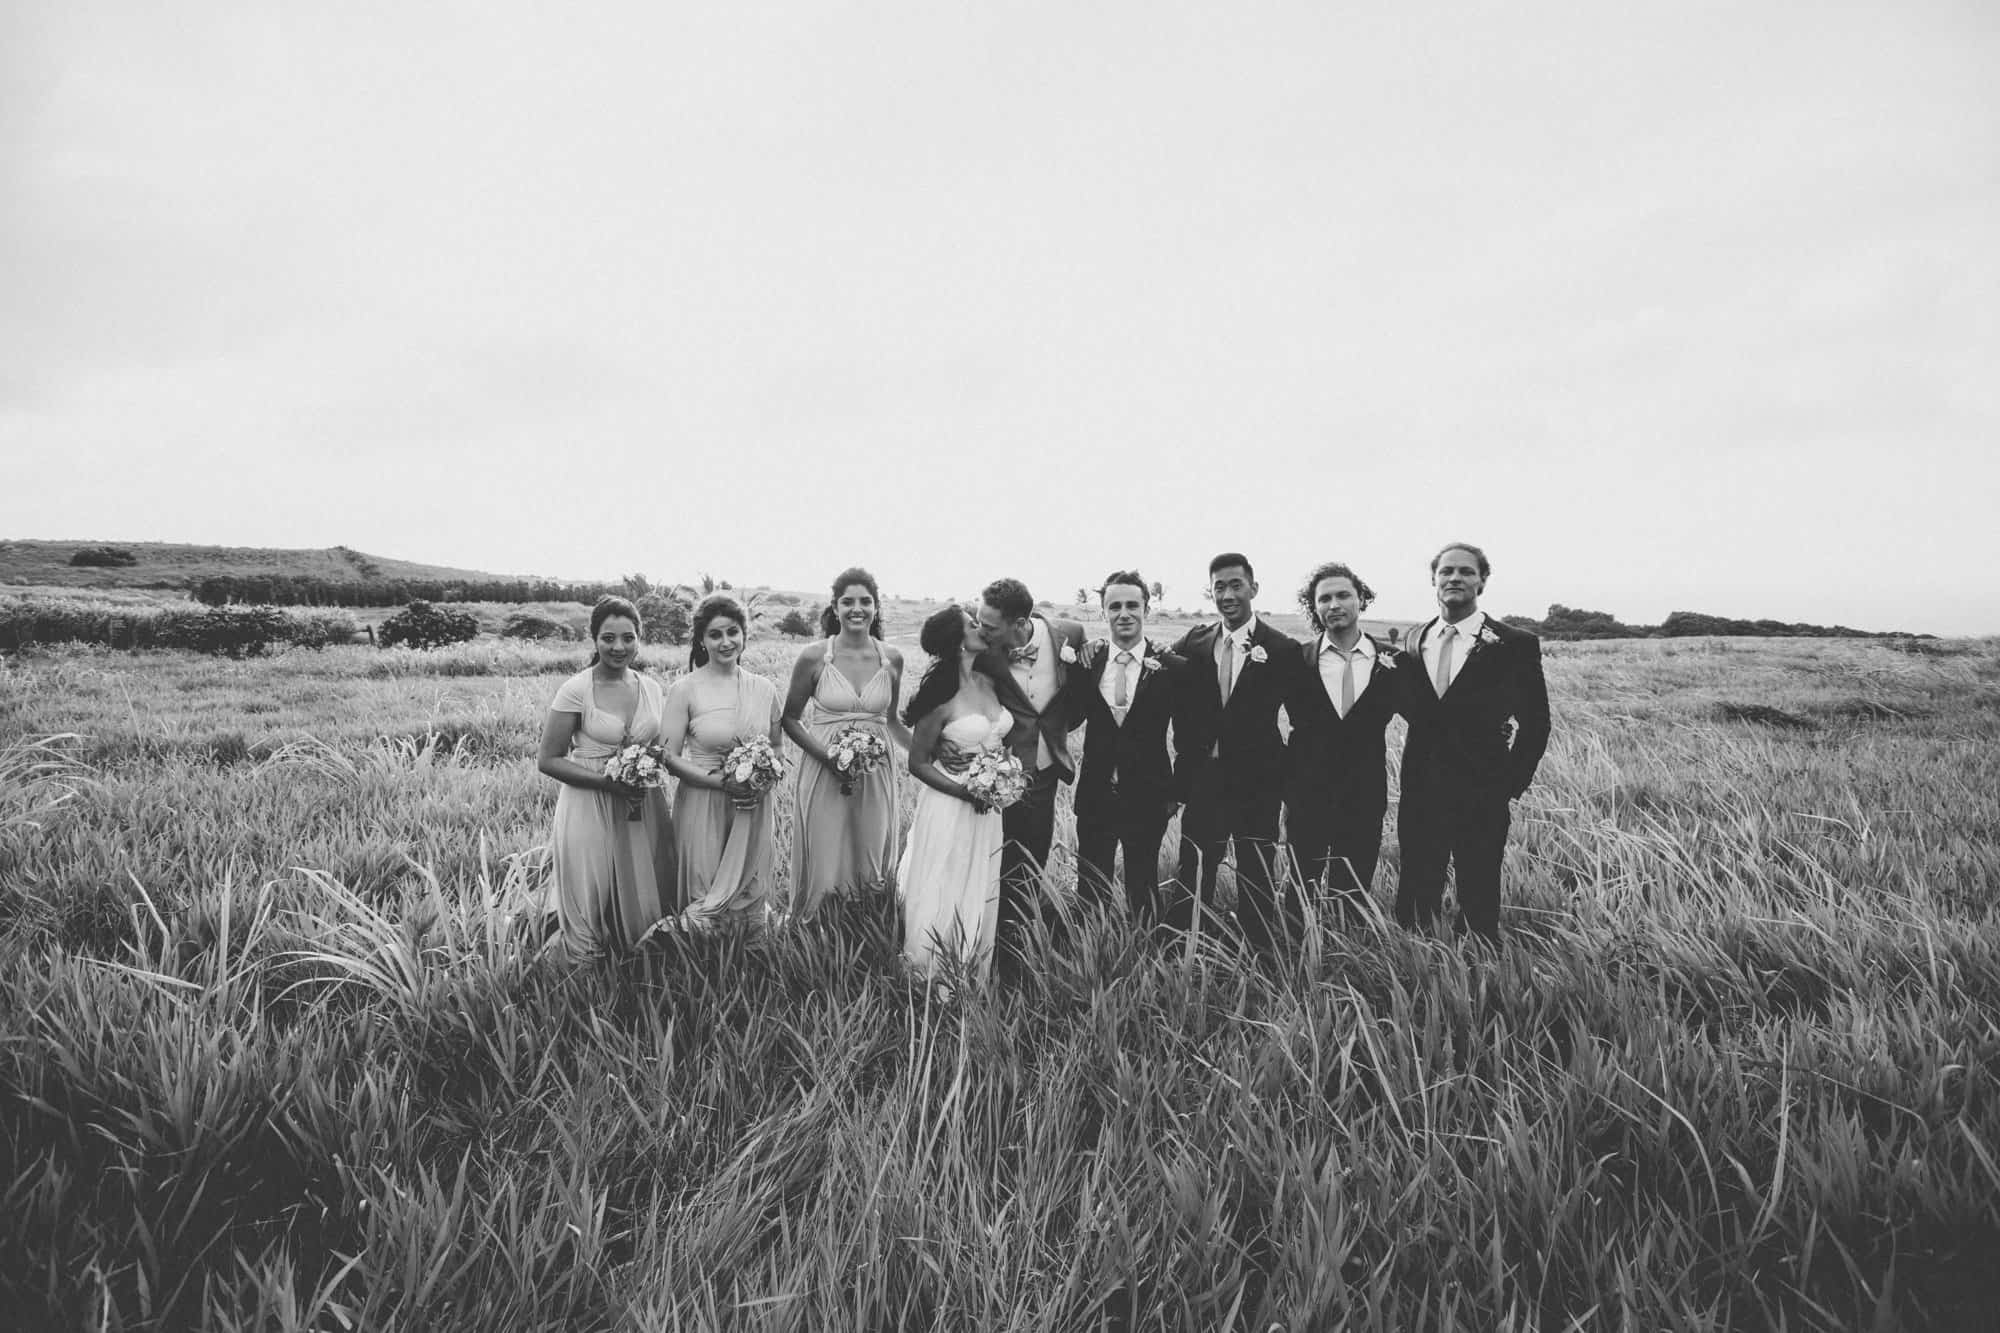 maui wedding party photos